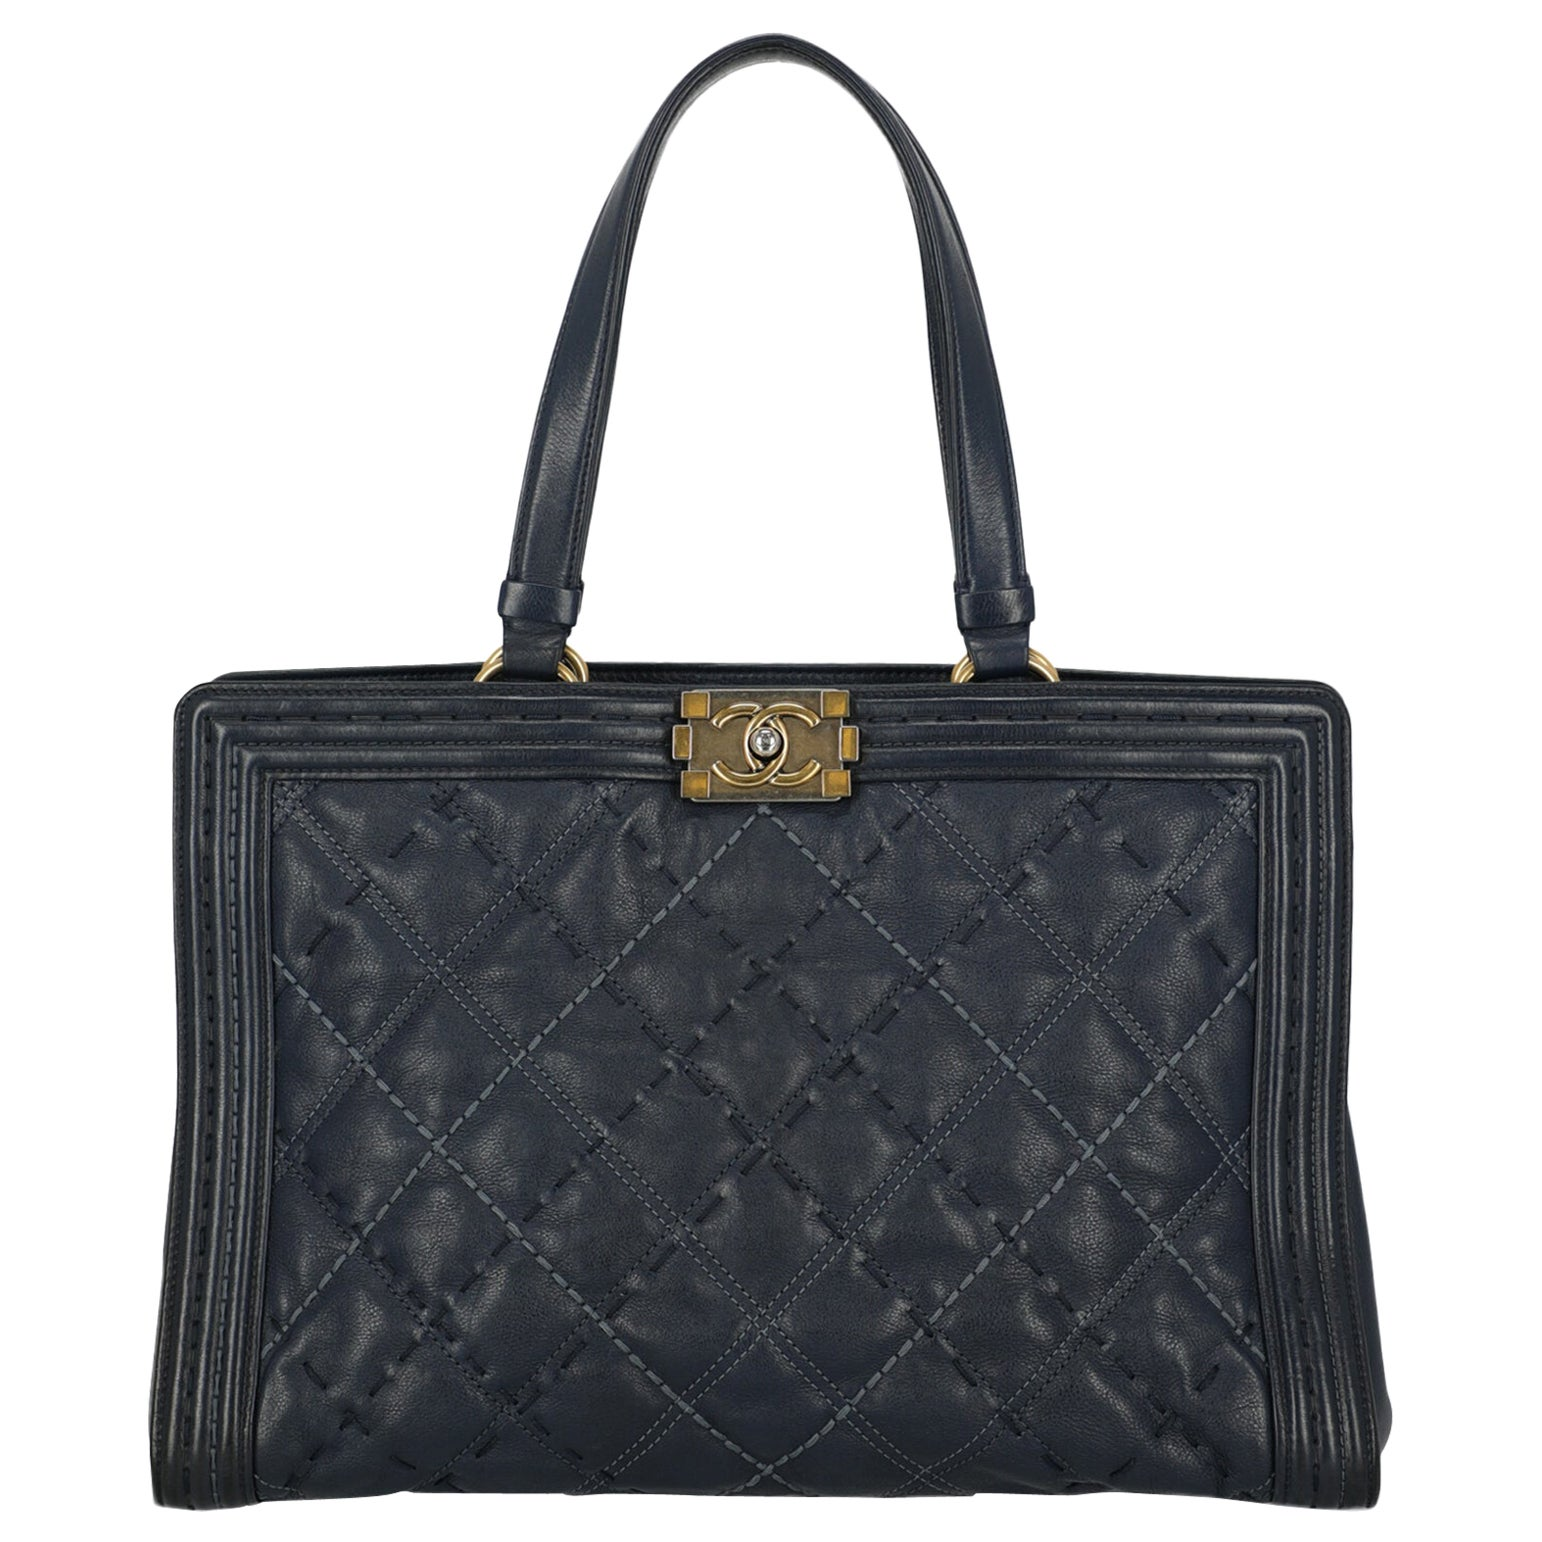 Chanel Woman Boy Tote Navy